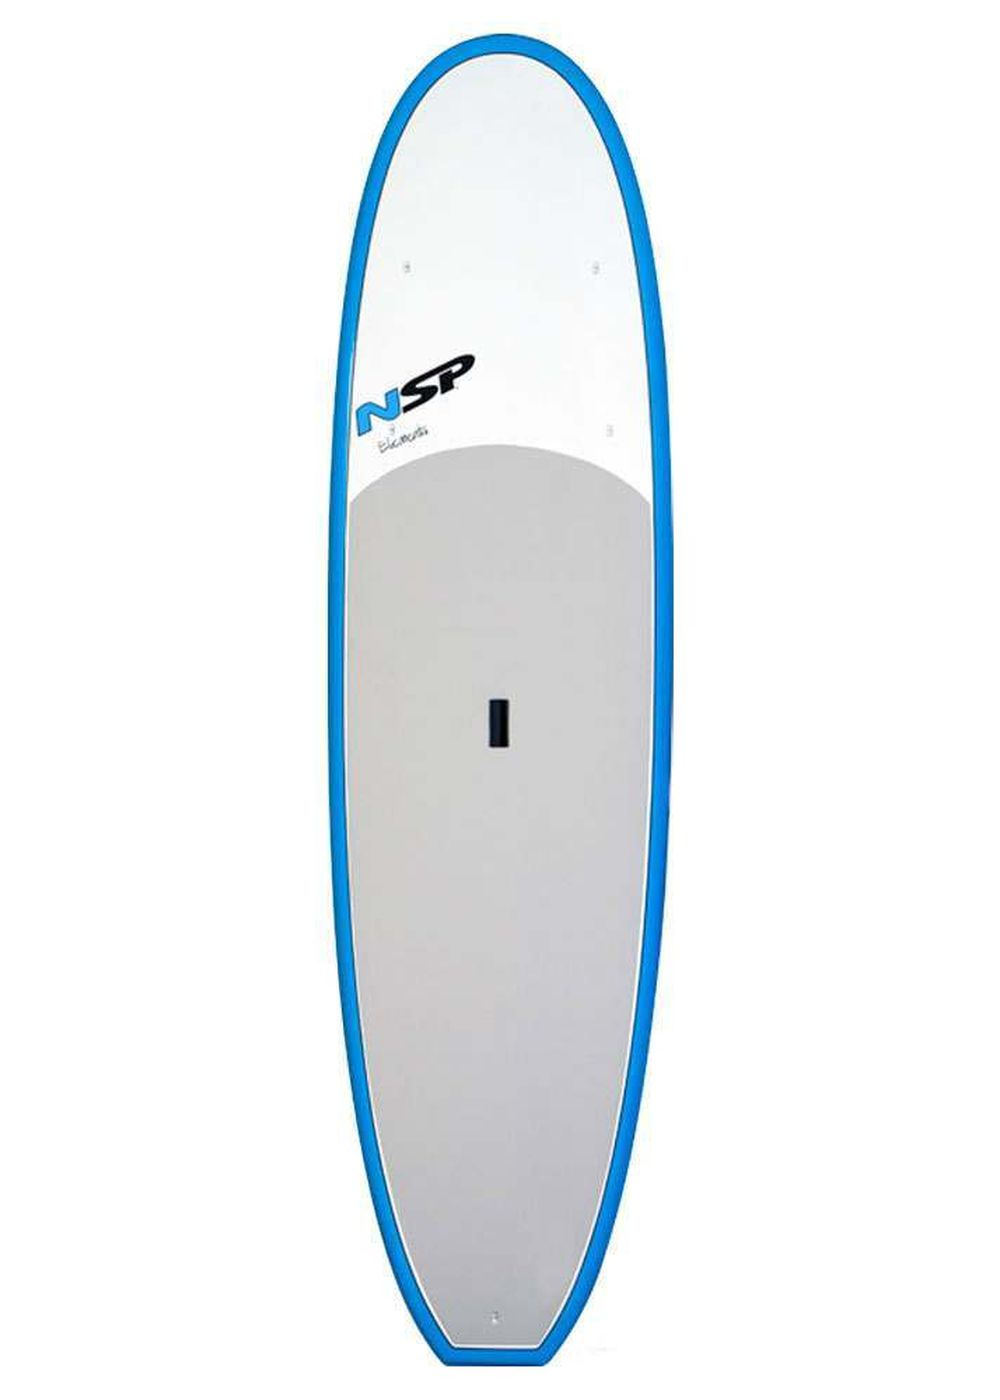 NSP ELEMENTS STAND UP PADDLEBOARD 10FT 2 Blue